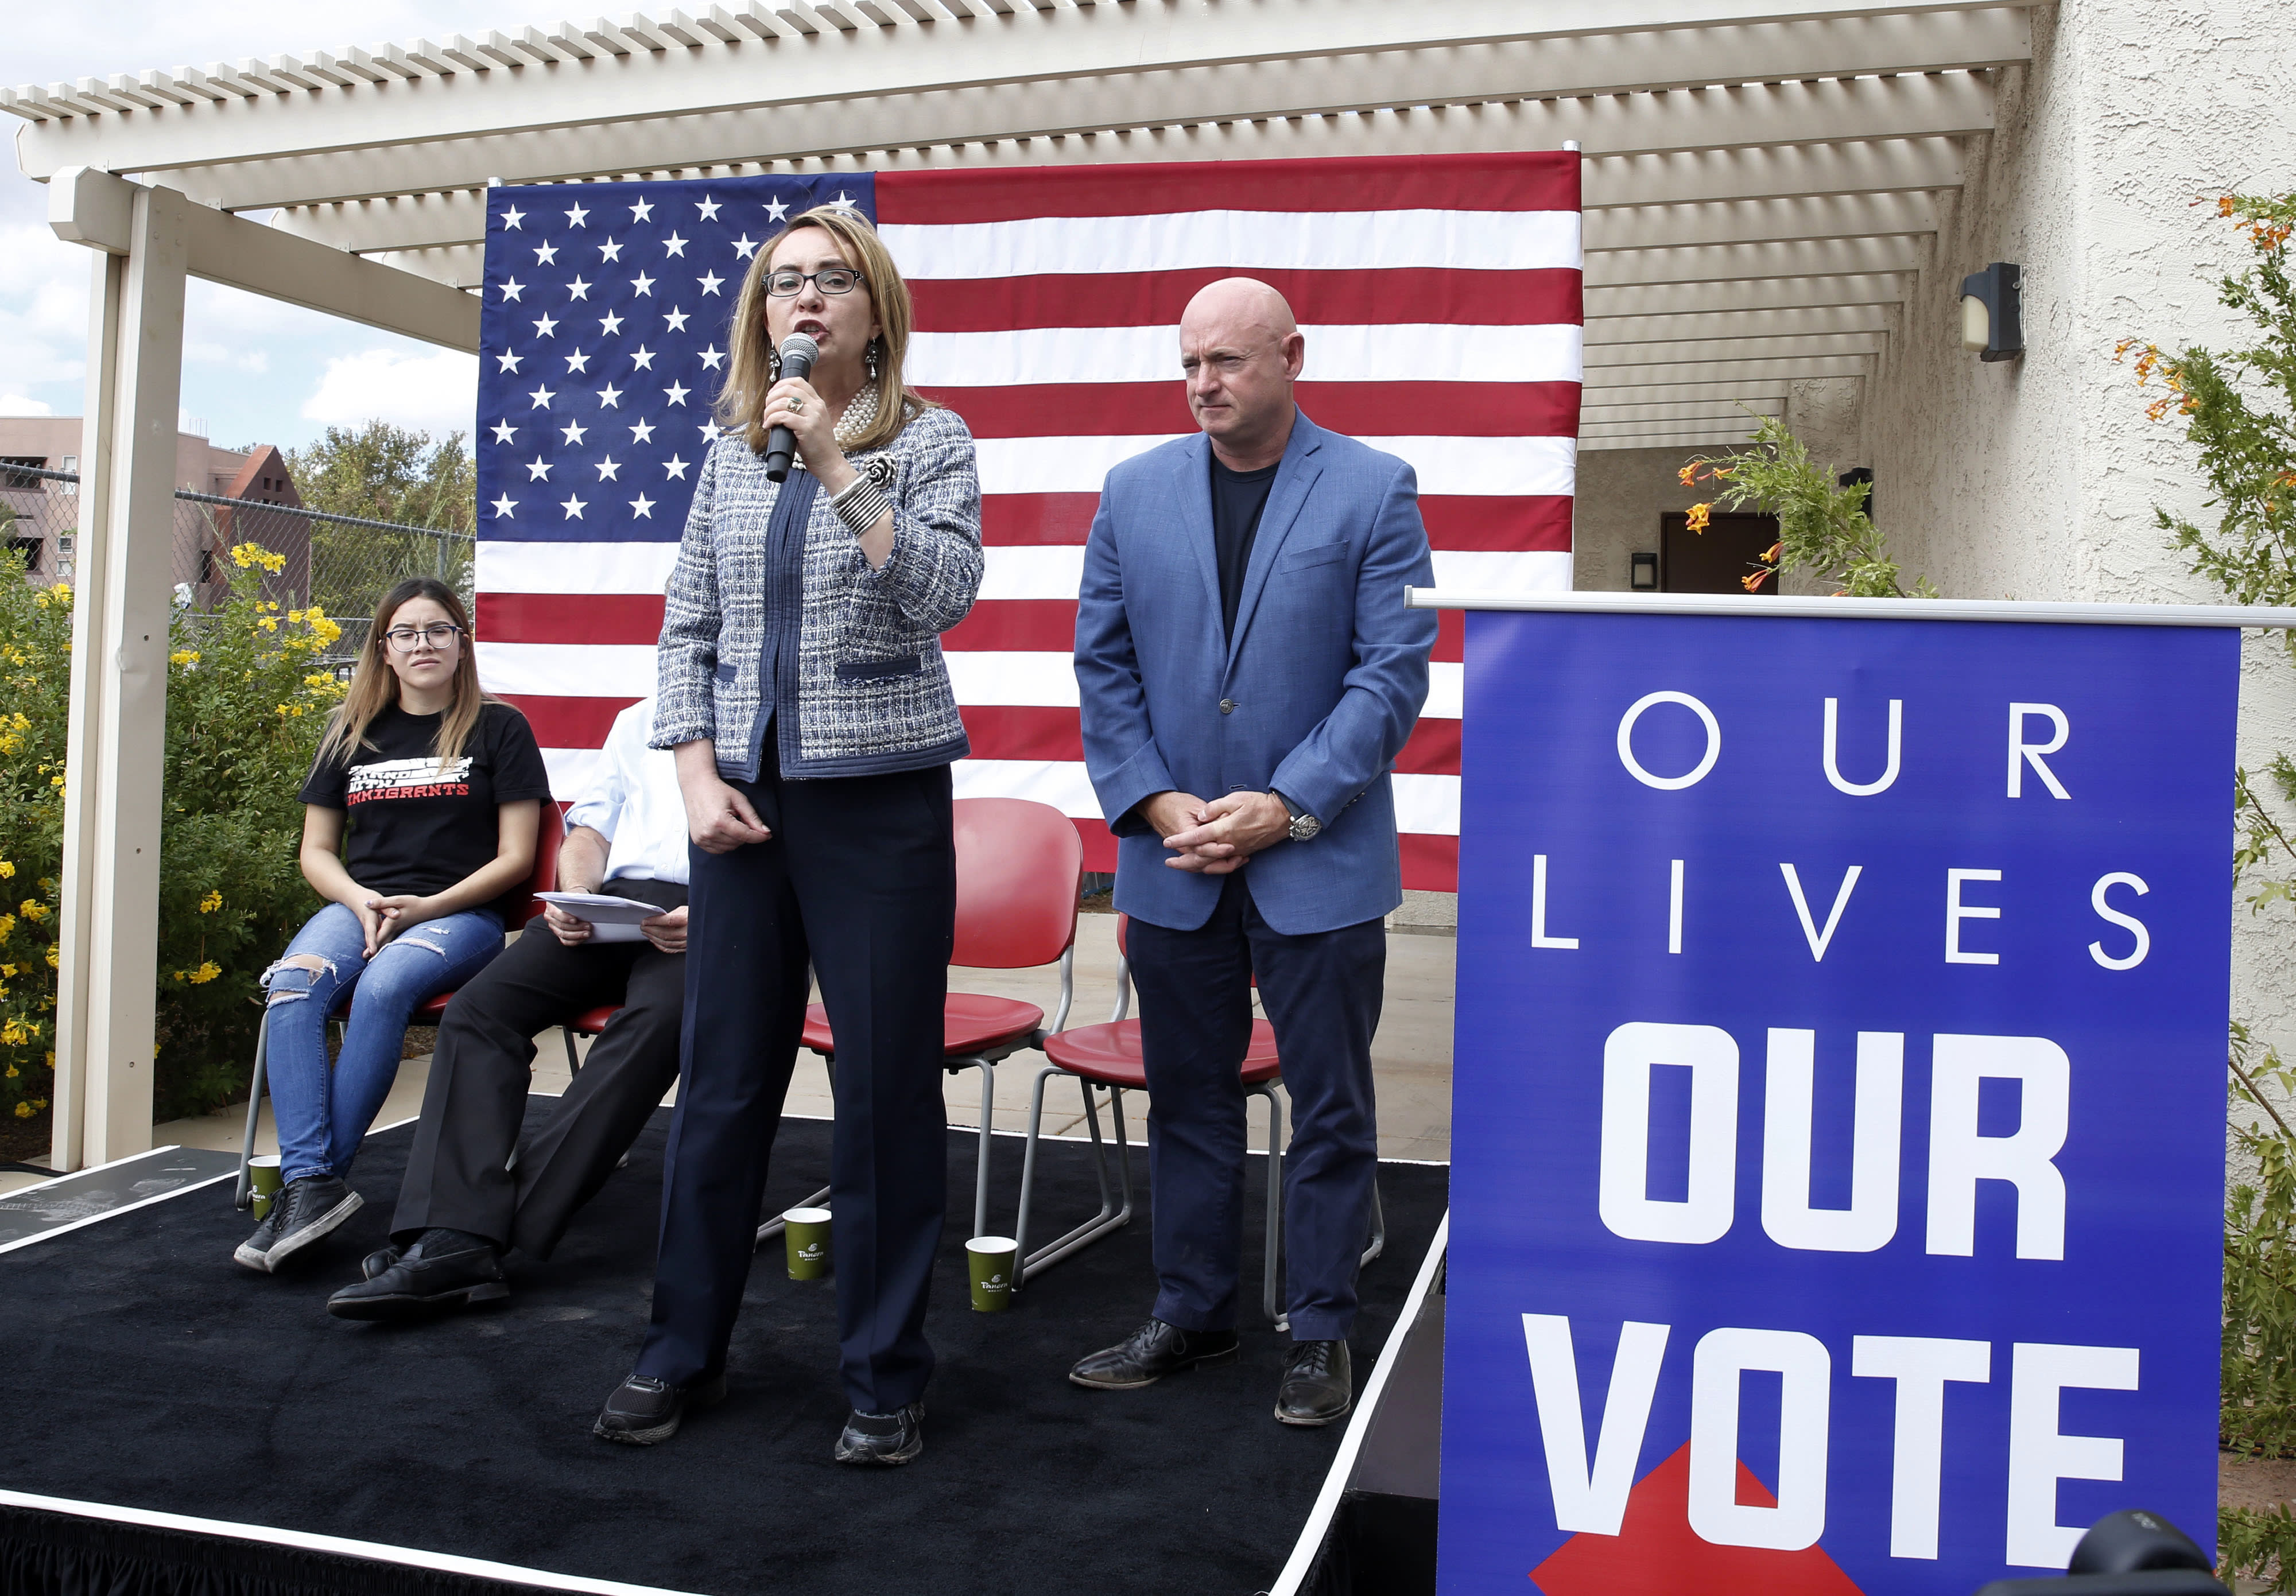 "In this Oct. 2, 2018 photo, former Rep. Gabby Giffords speaks as her husband, retired NASA astronaut and Navy Capt. Mark Kelly looks on as they kick off ""The Vote Save Lives"" tour at UNLV in Las Vegas. The 2018 election marks the first time that groups supporting gun control measures could spend more on a campaign than the National Rifle Association. (Bizuayehu Tesfaye/Las Vegas Review-Journal via AP)/Las Vegas Review-Journal via AP)"